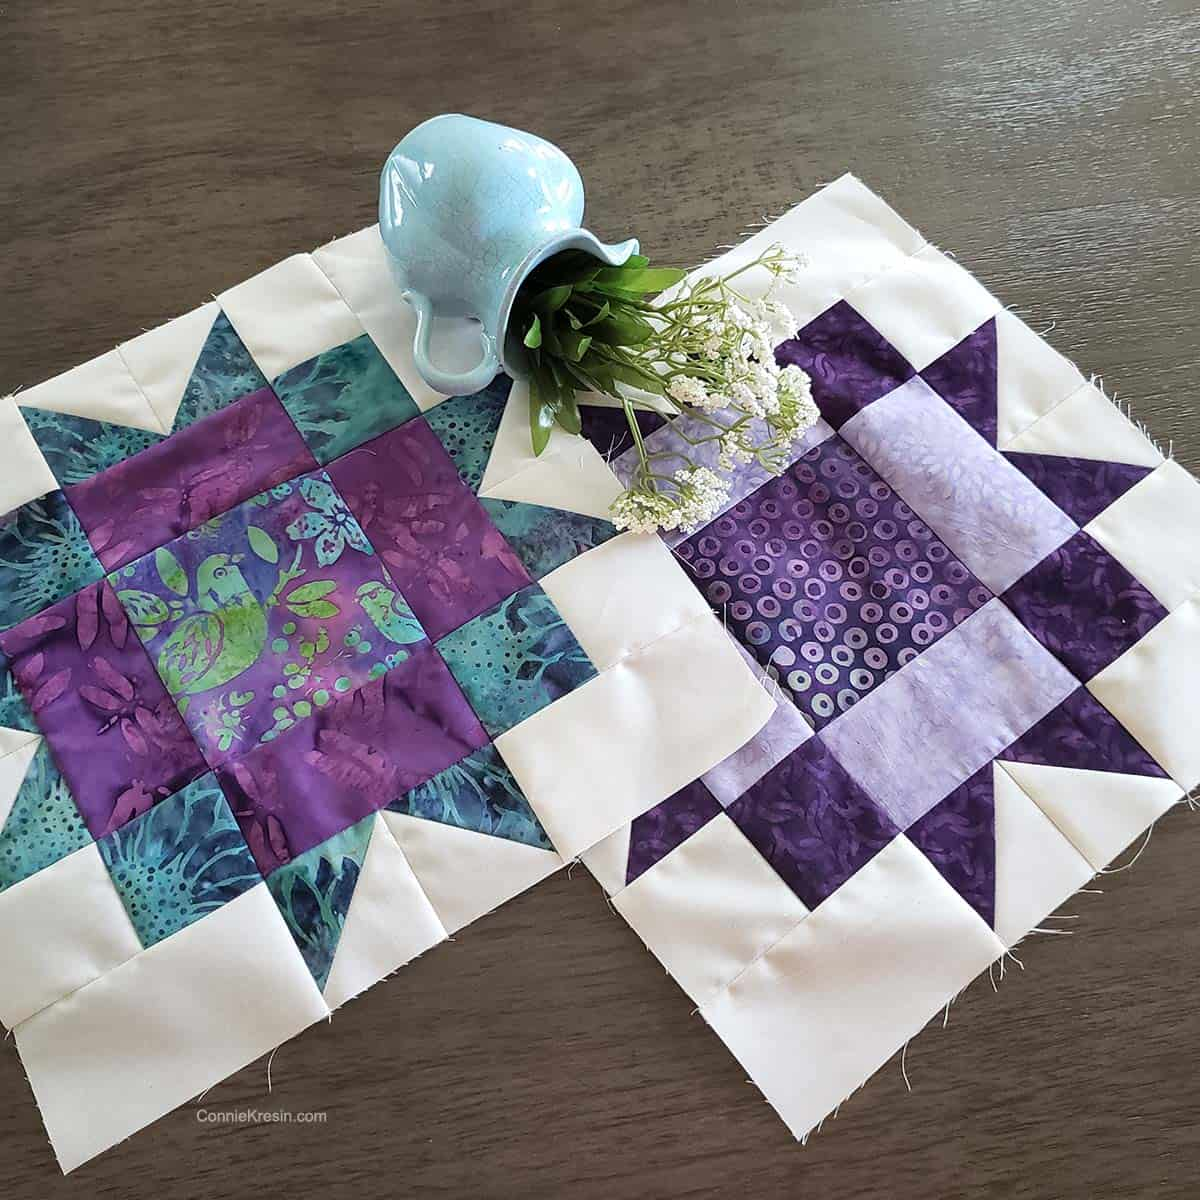 Maple Star quilt block tutorial with flowers